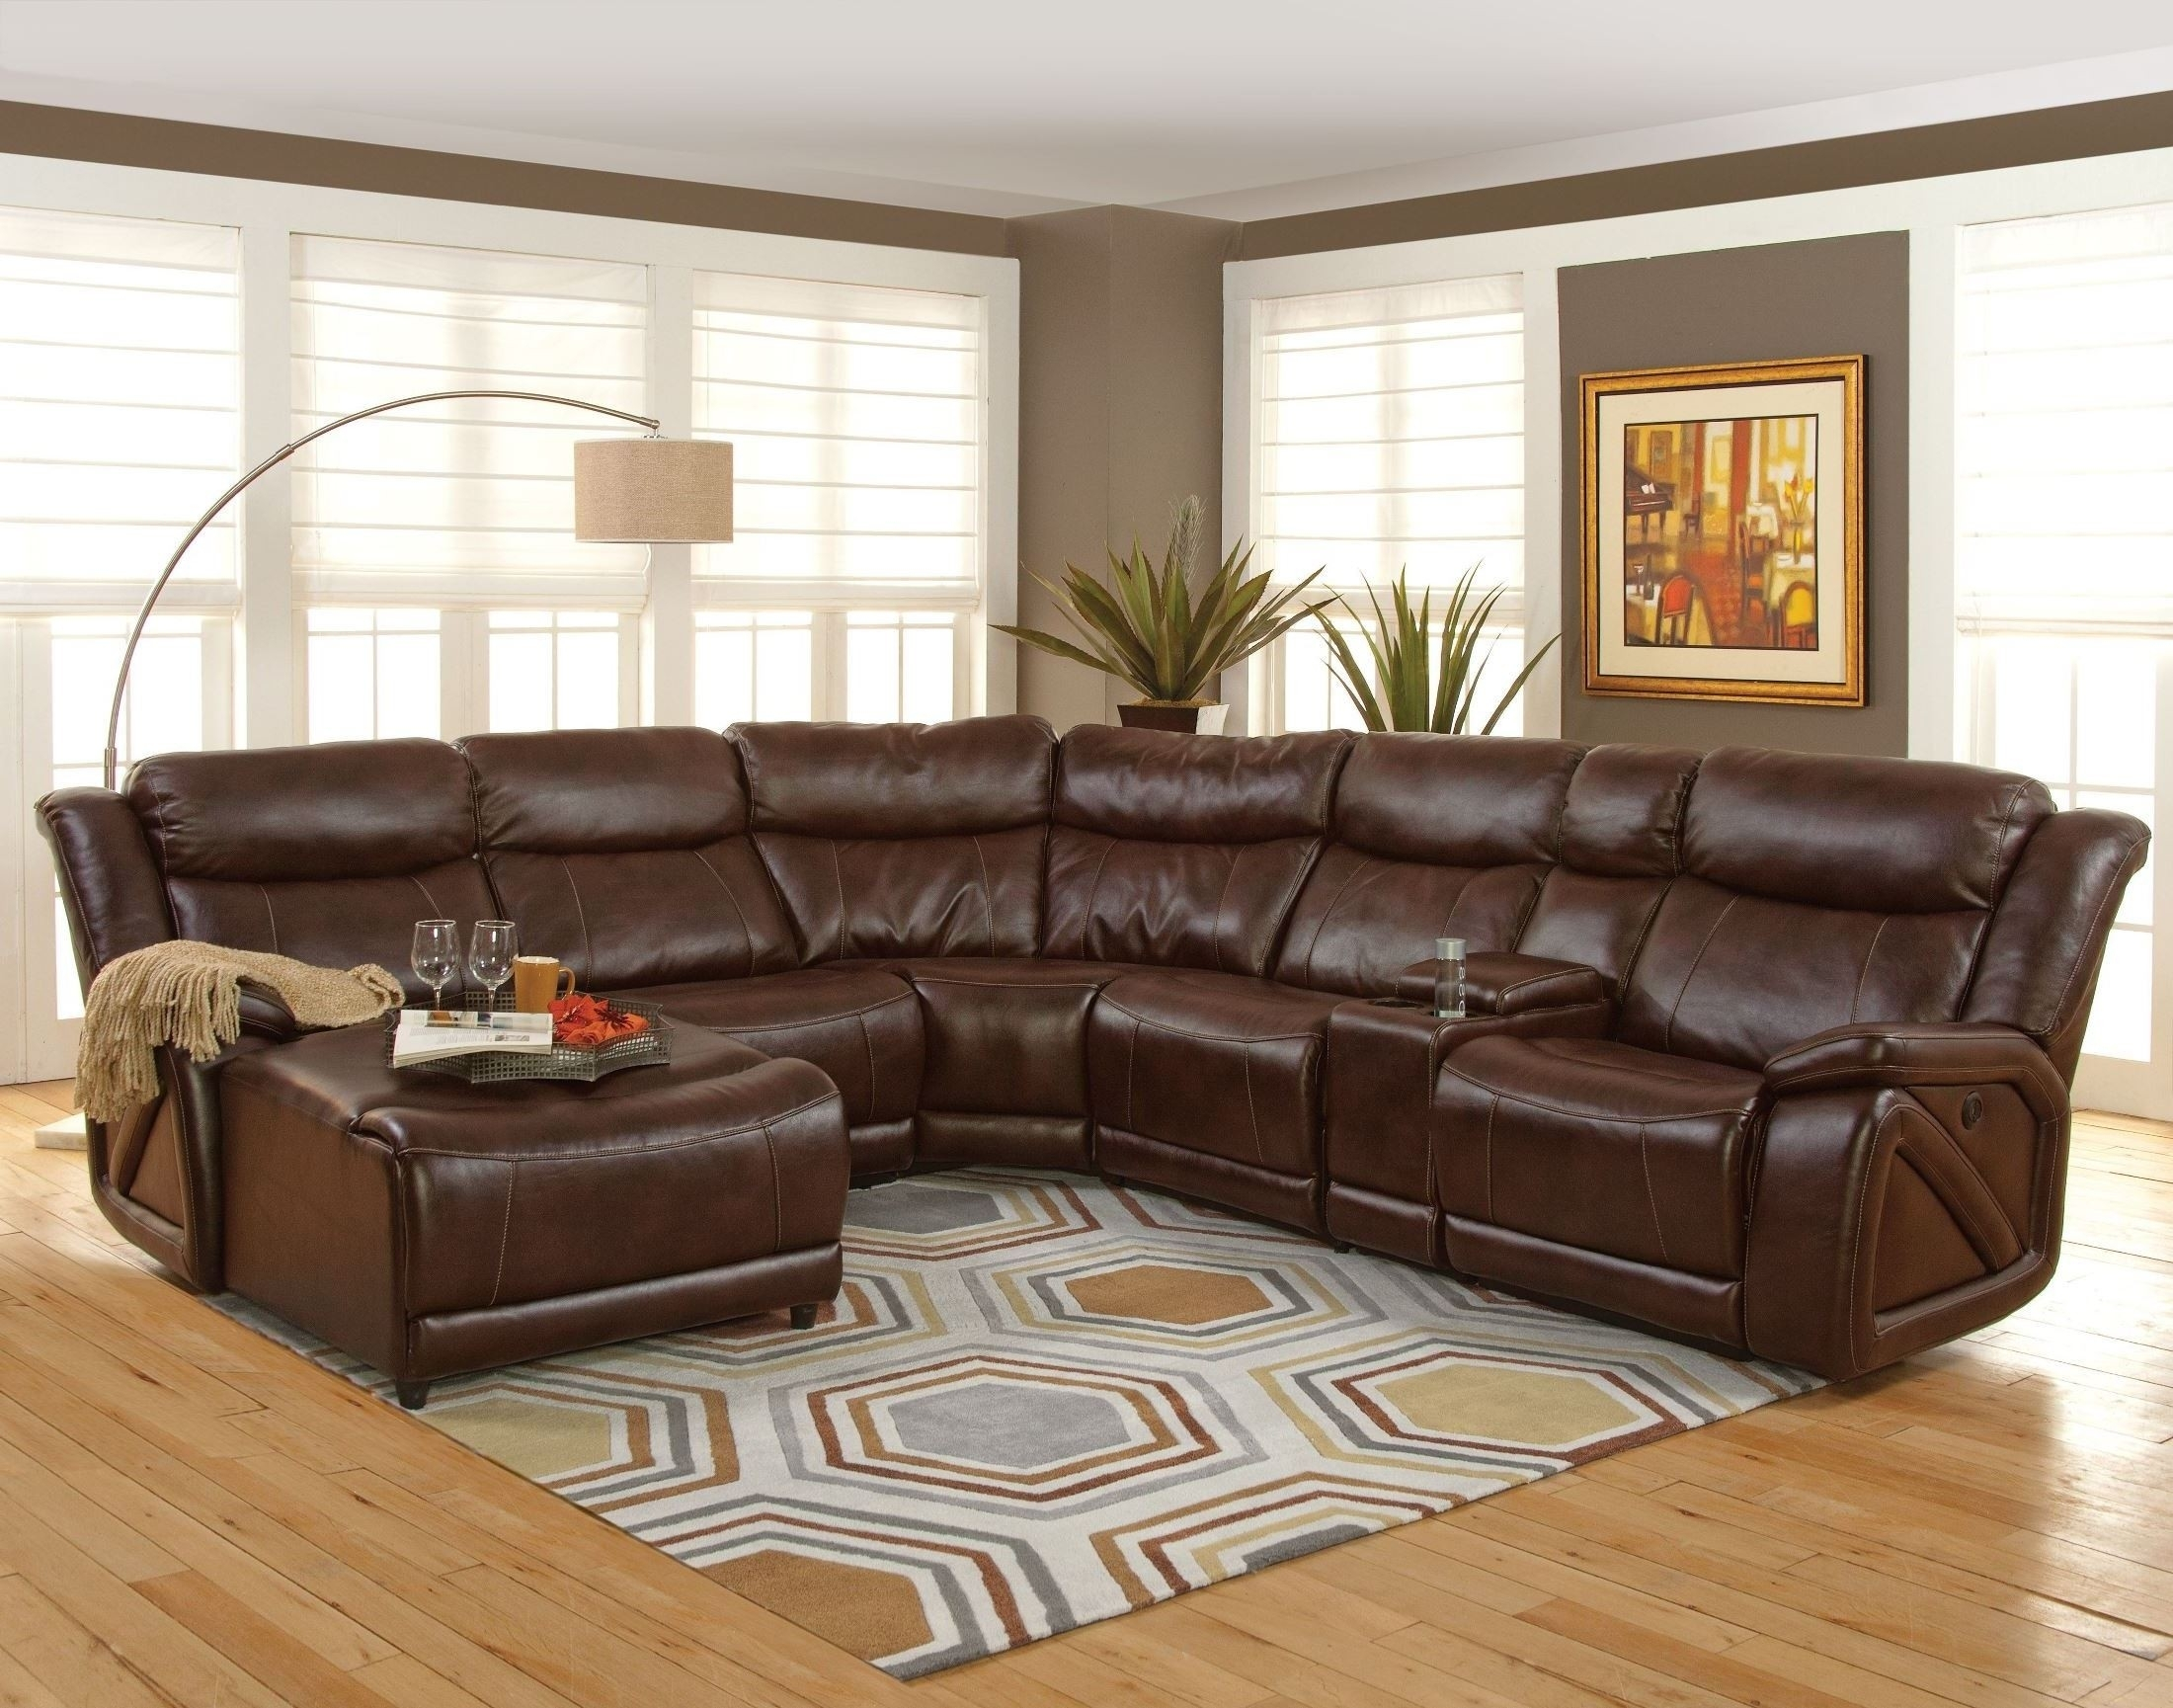 Park Place Premier Brown Laf Sectional From New Classics (20-225-17L with regard to Turdur 3 Piece Sectionals With Laf Loveseat (Image 16 of 30)